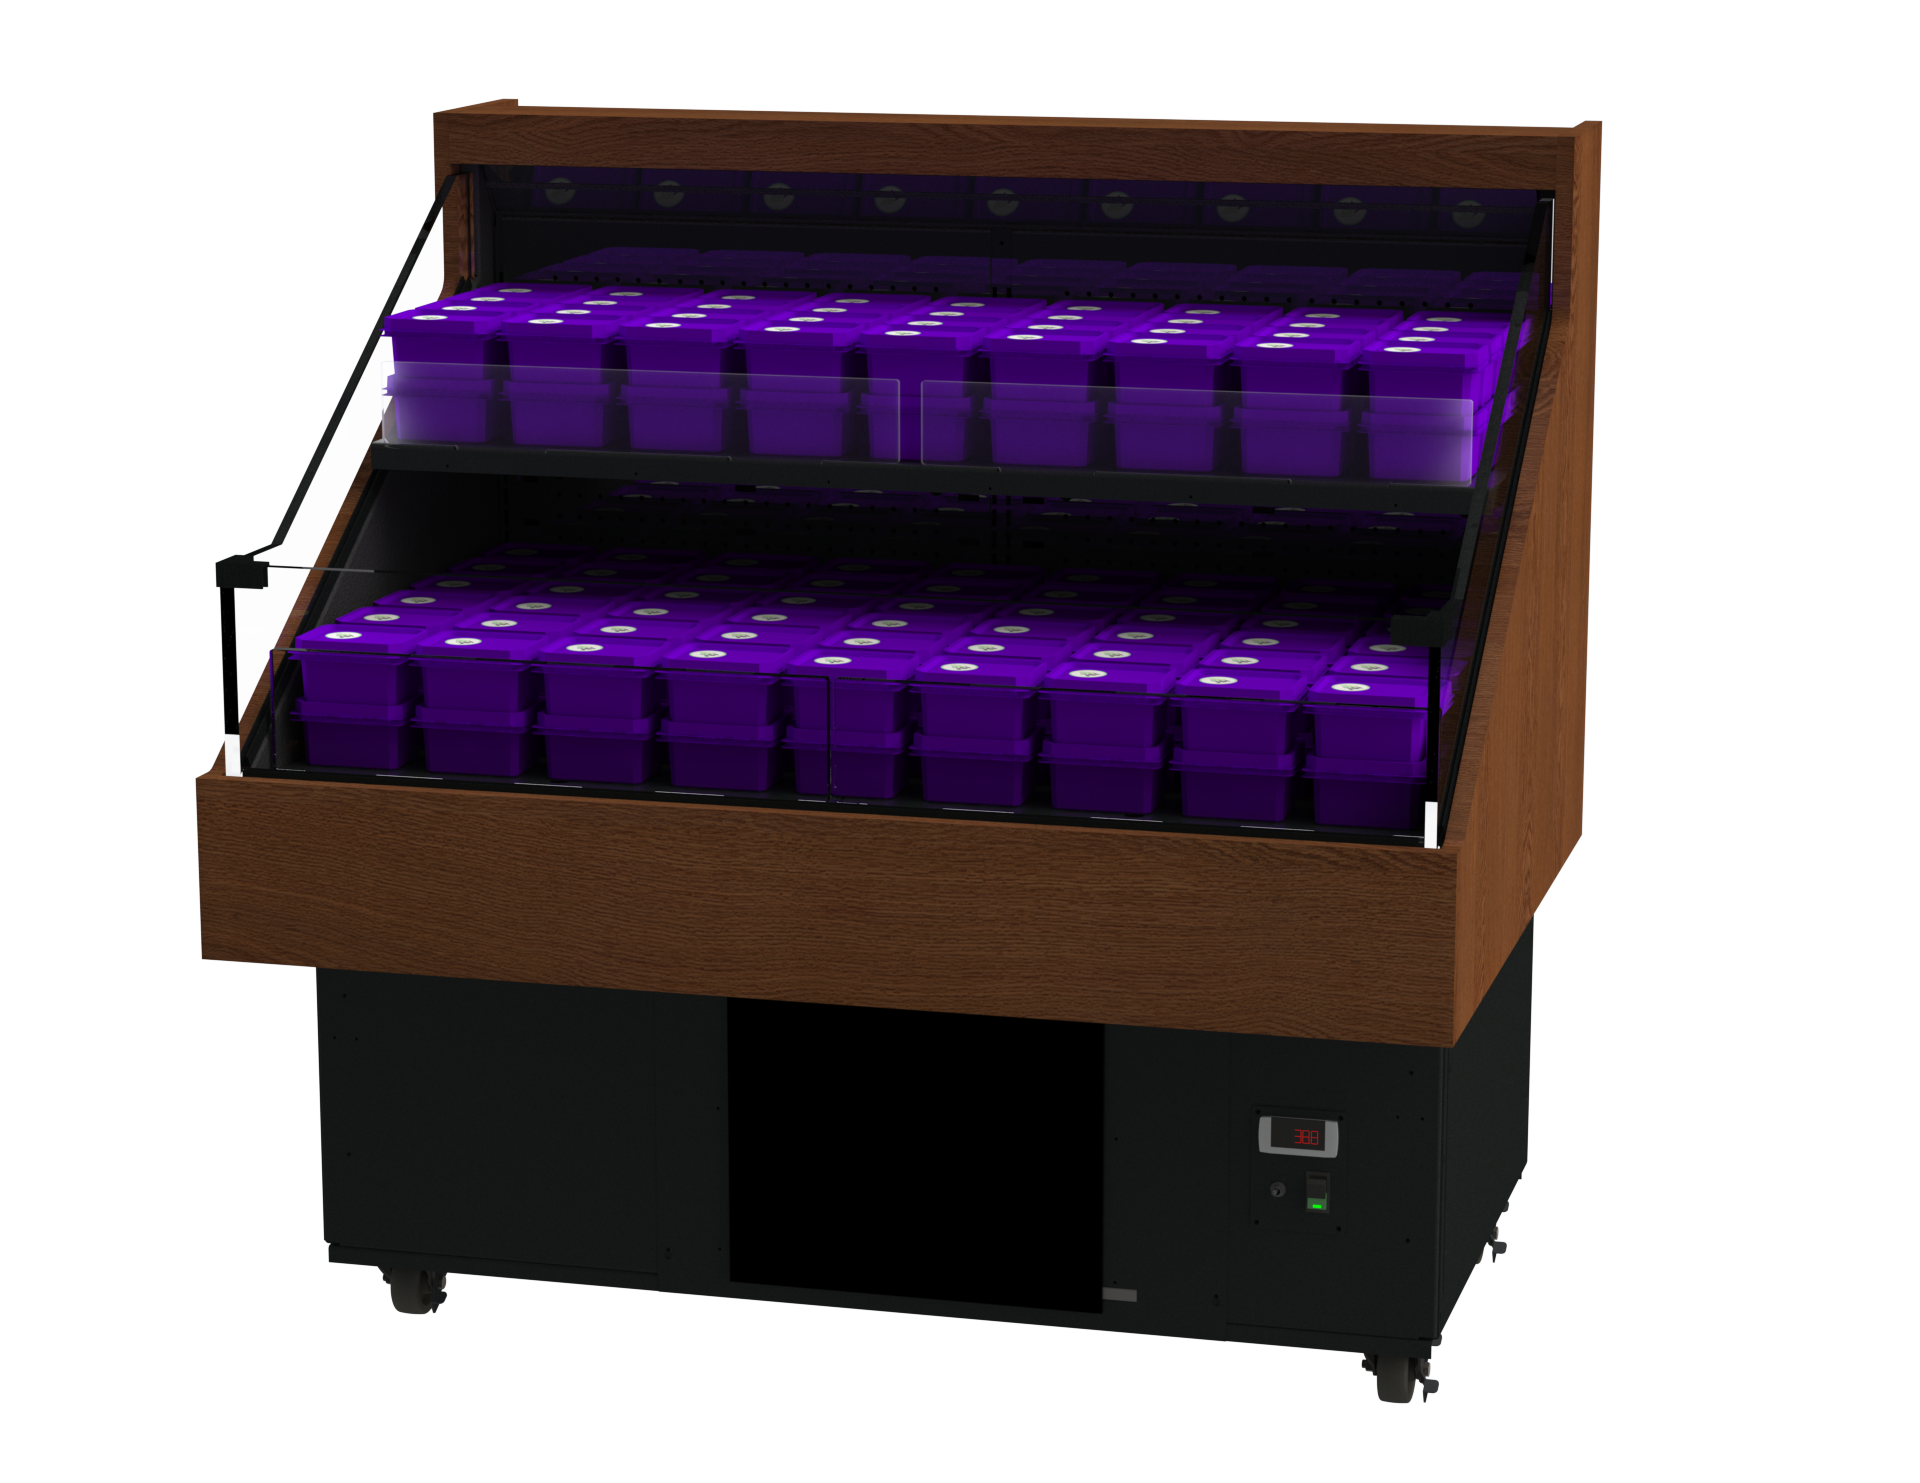 High Profile Refrigerated Slant Cases (2′-4'W)